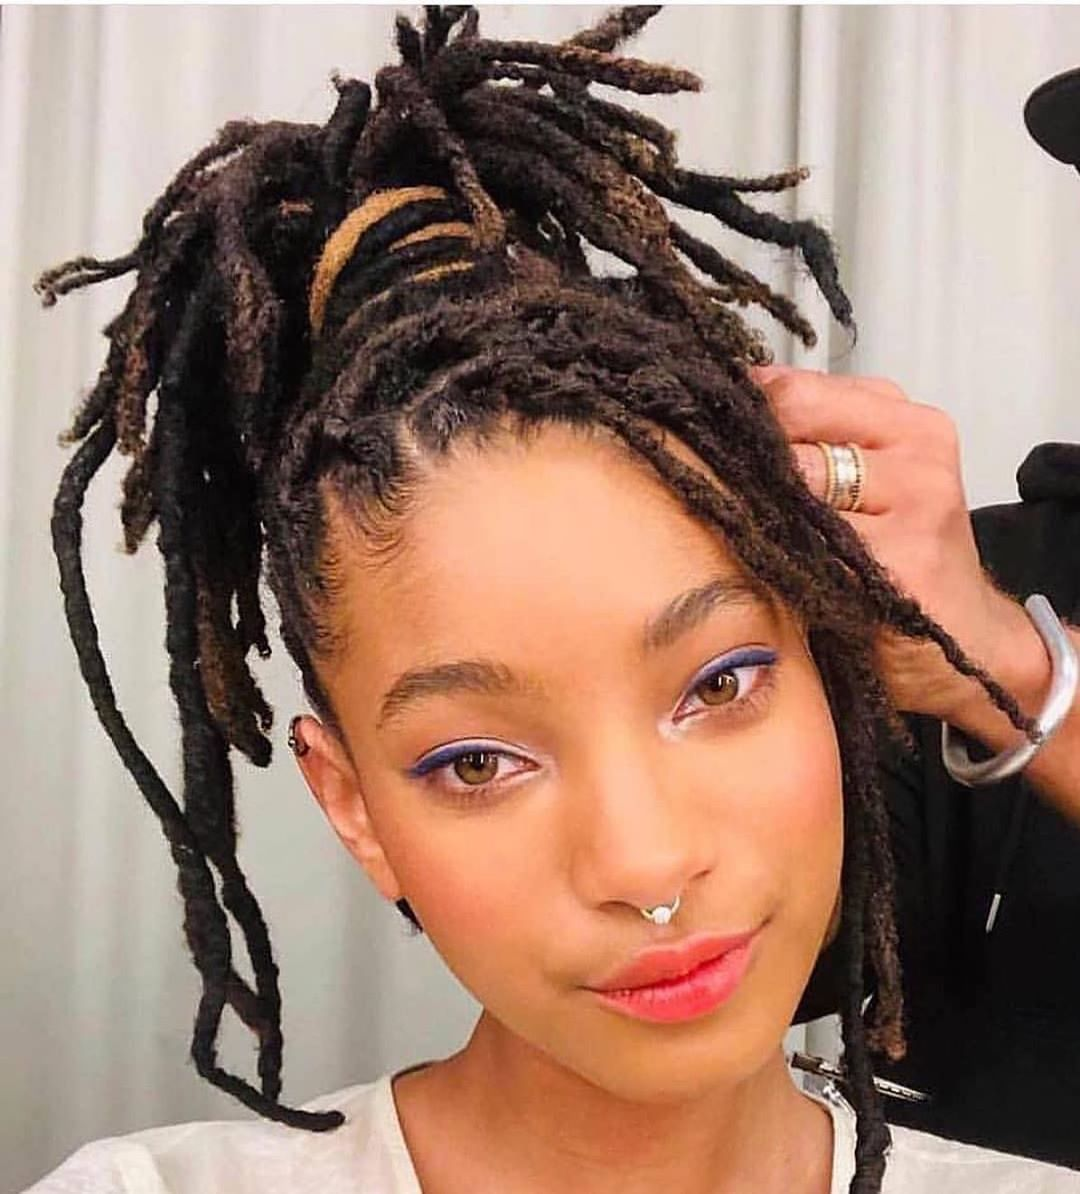 Natural Hair On Instagram Willowsmith Naturalhairlovez Locs Naturalhairstyles Hair Styles Natural Hair Styles Locs Hairstyles